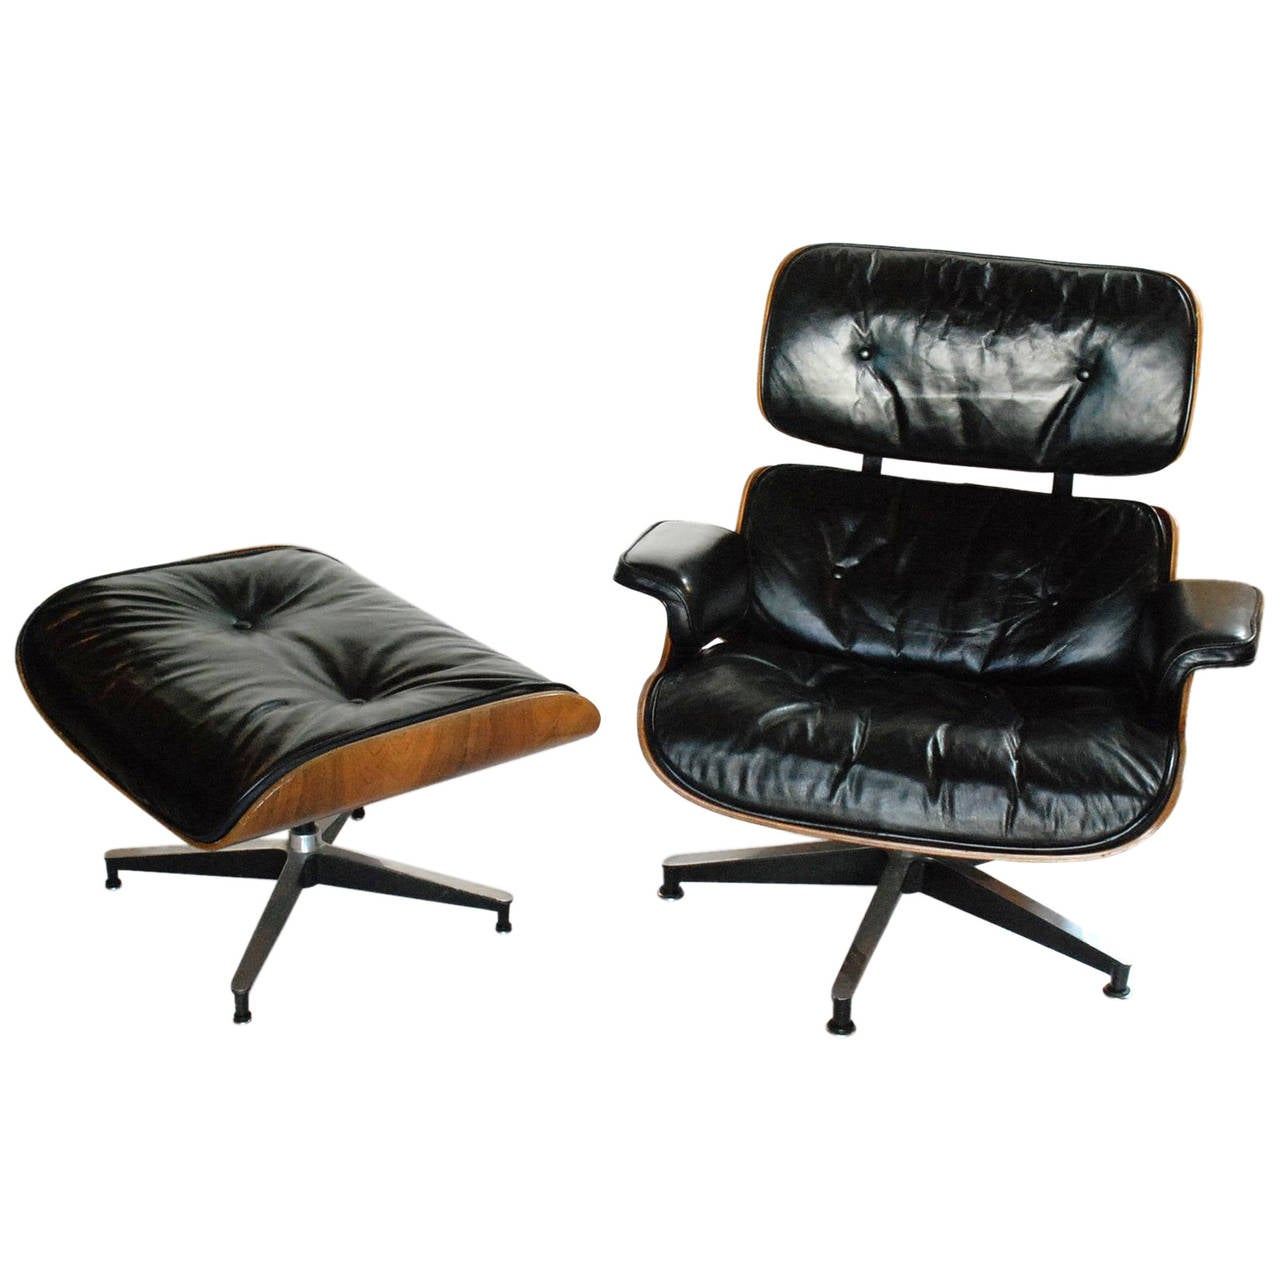 Early Original Eames Lounge 670 671 Armchair And Ottoman For Sale At